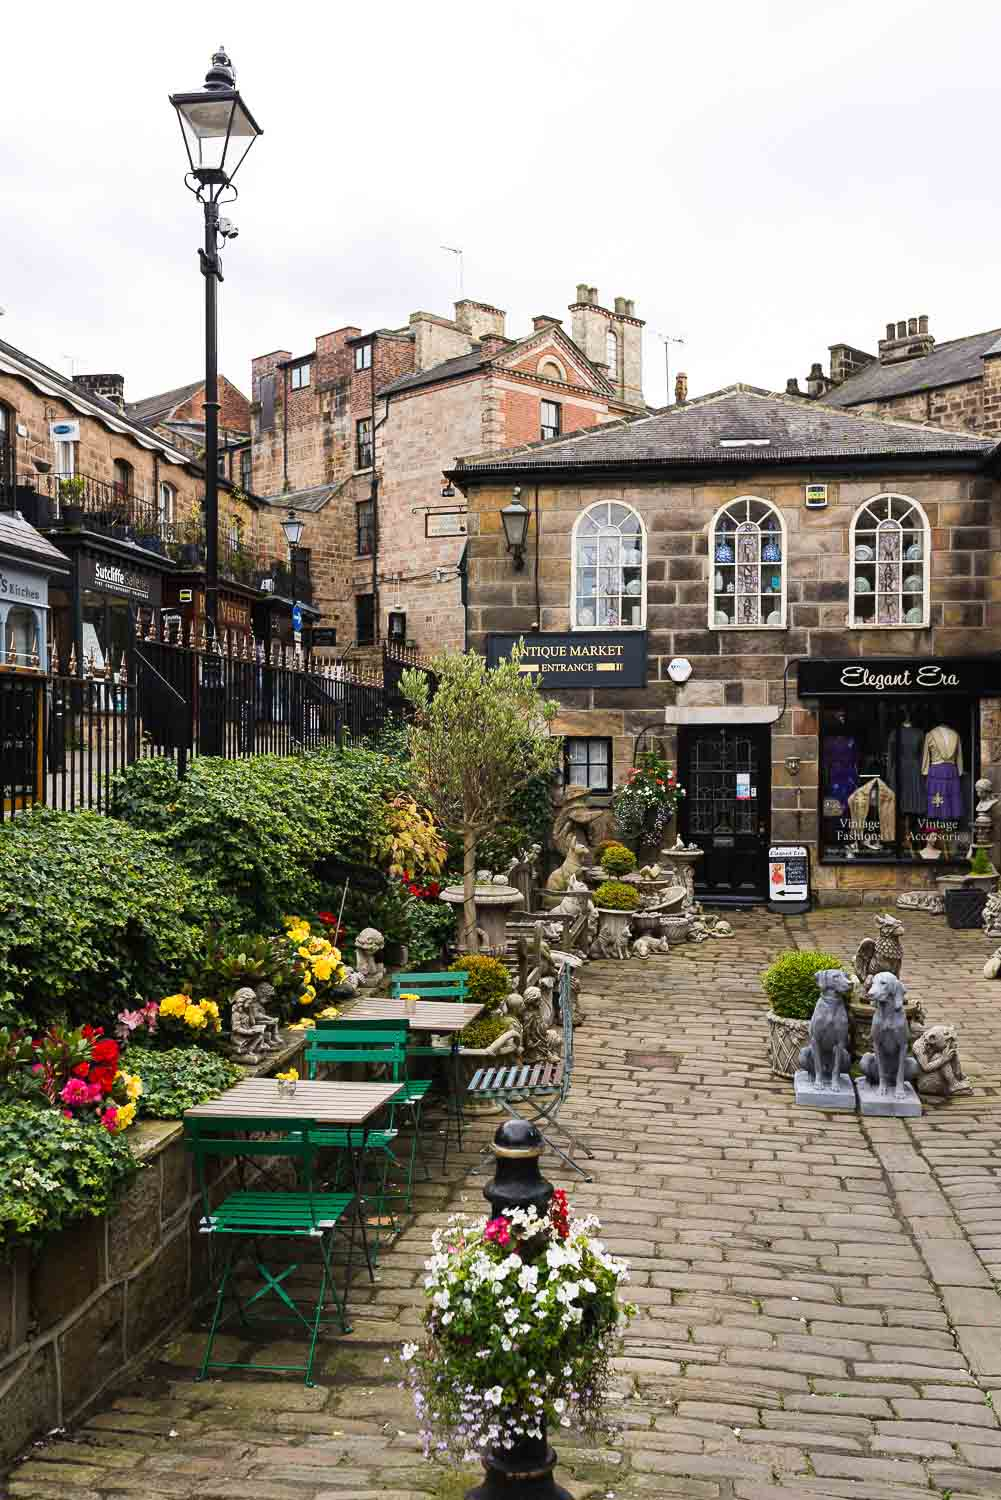 The town of Harrogate in Yorkshire, England UK